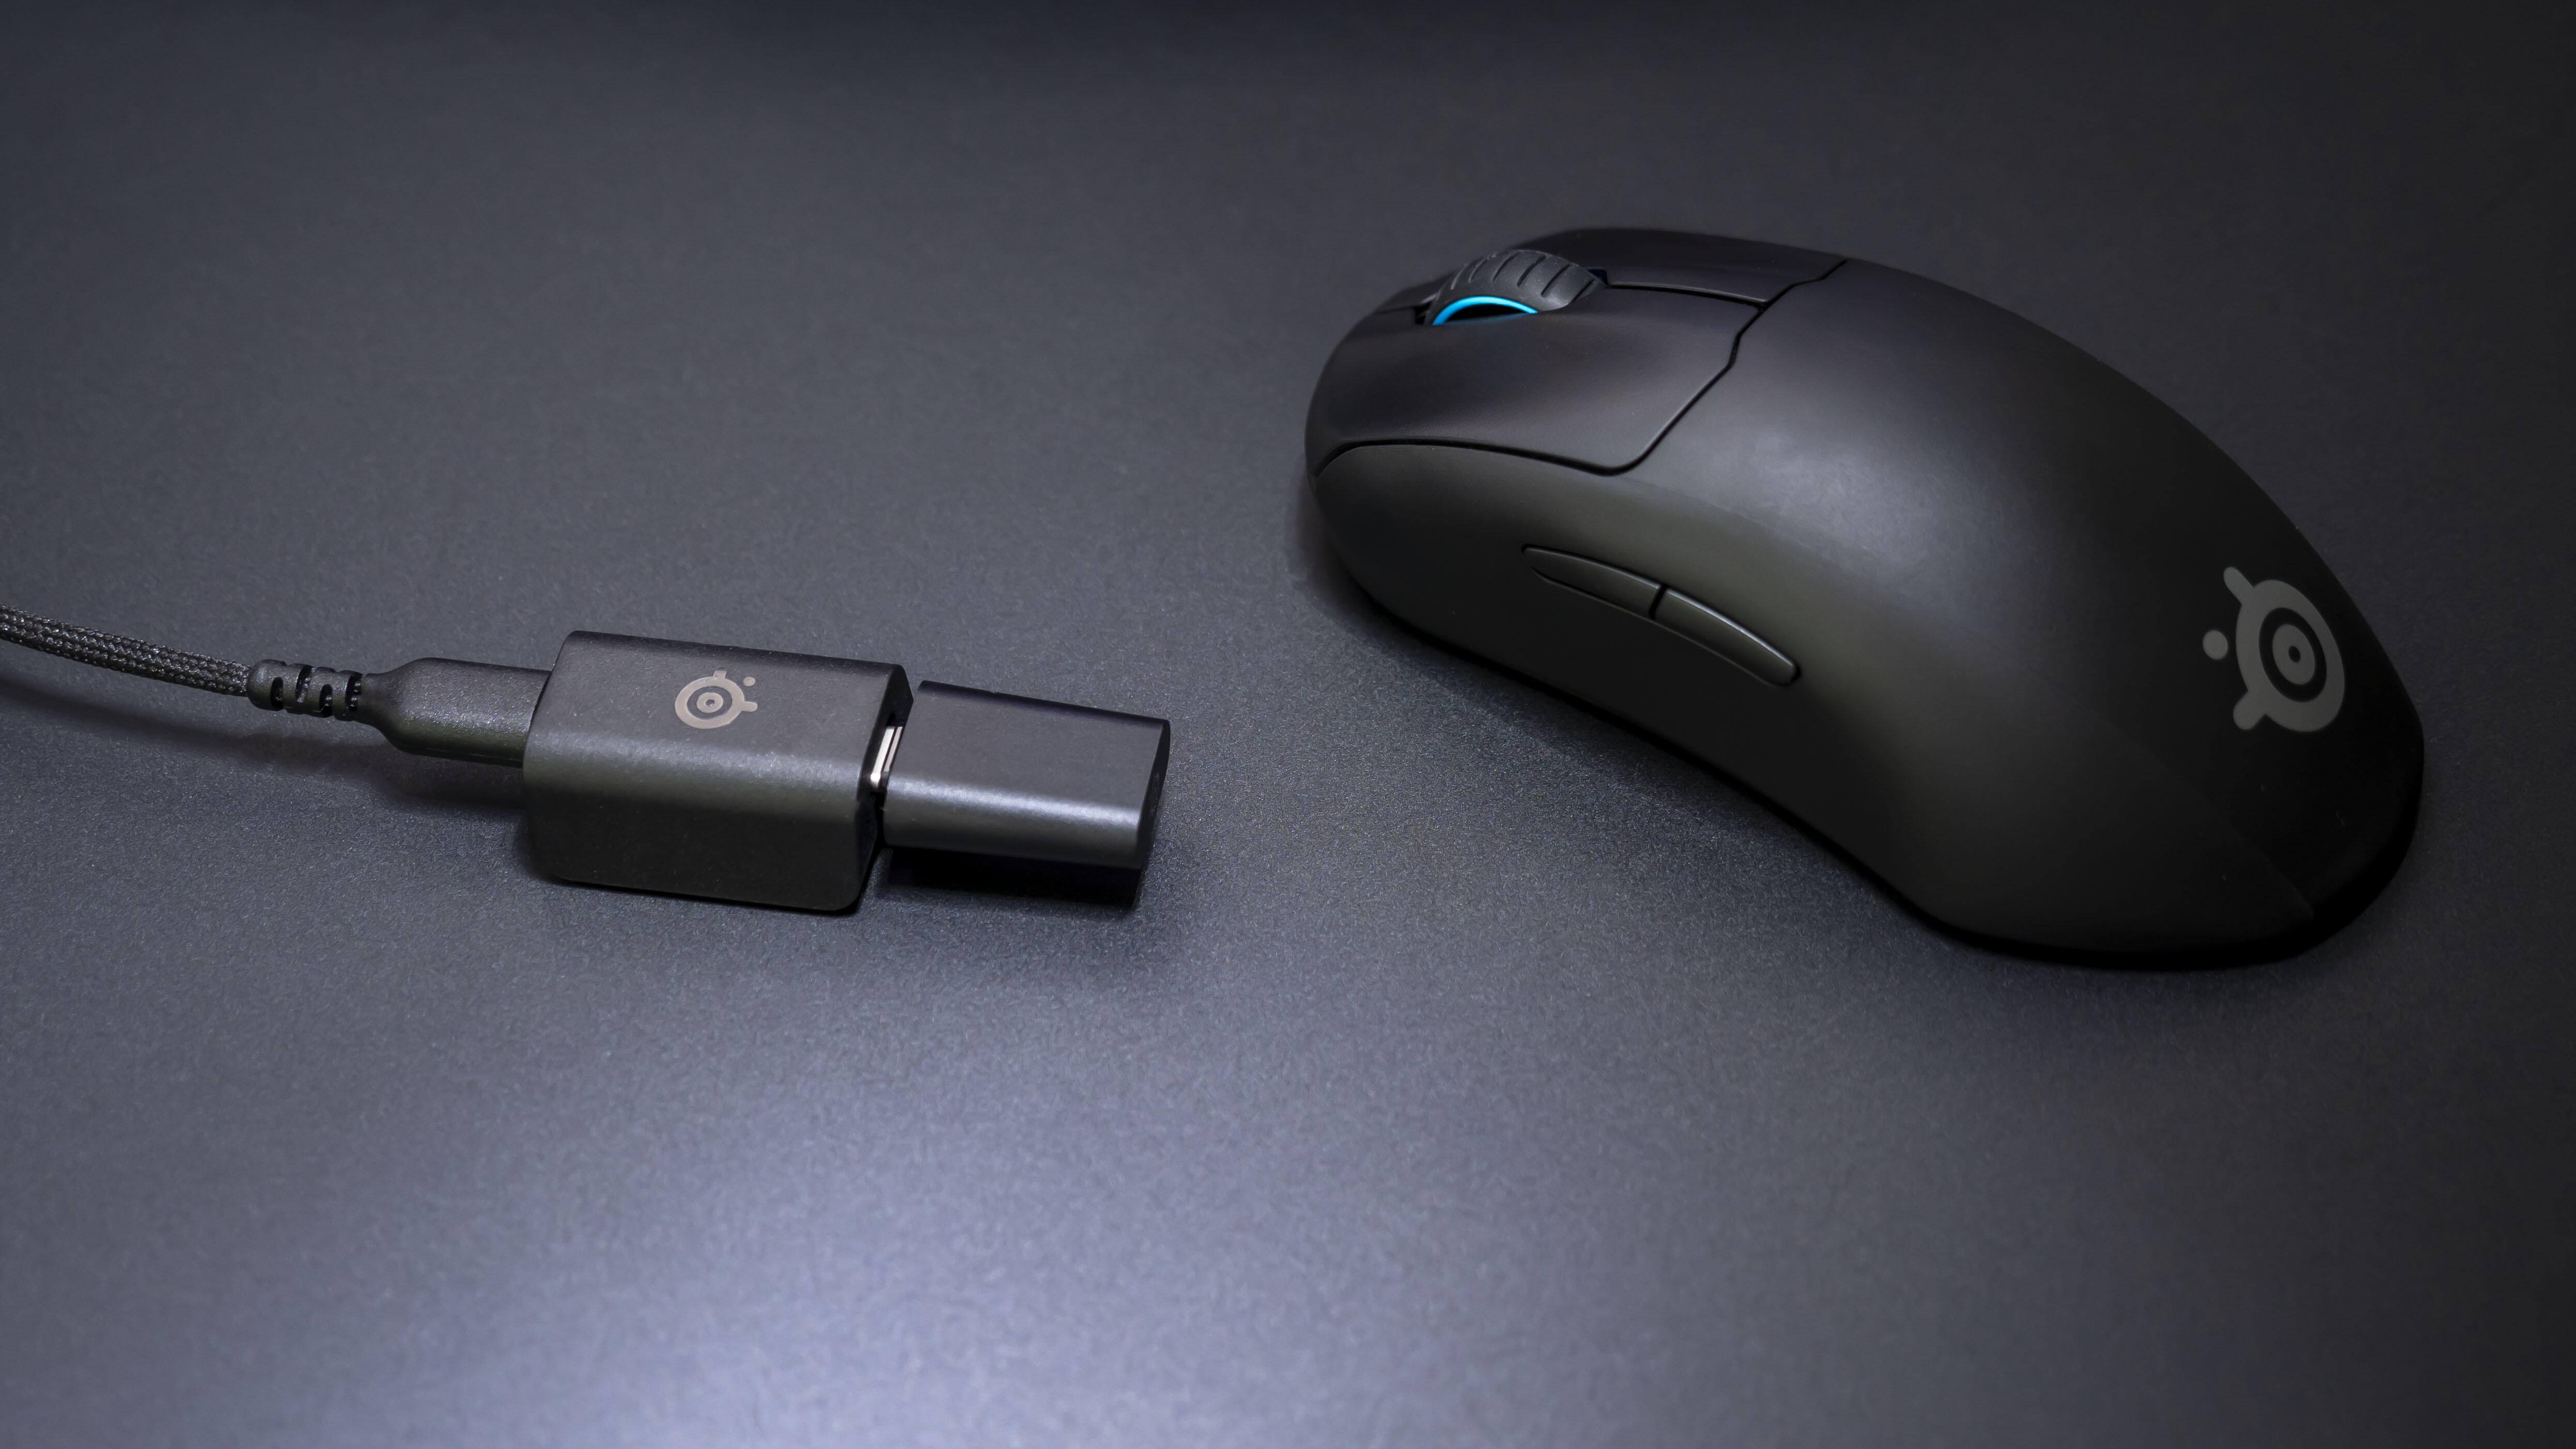 steelseries-prime-wireless-mouse